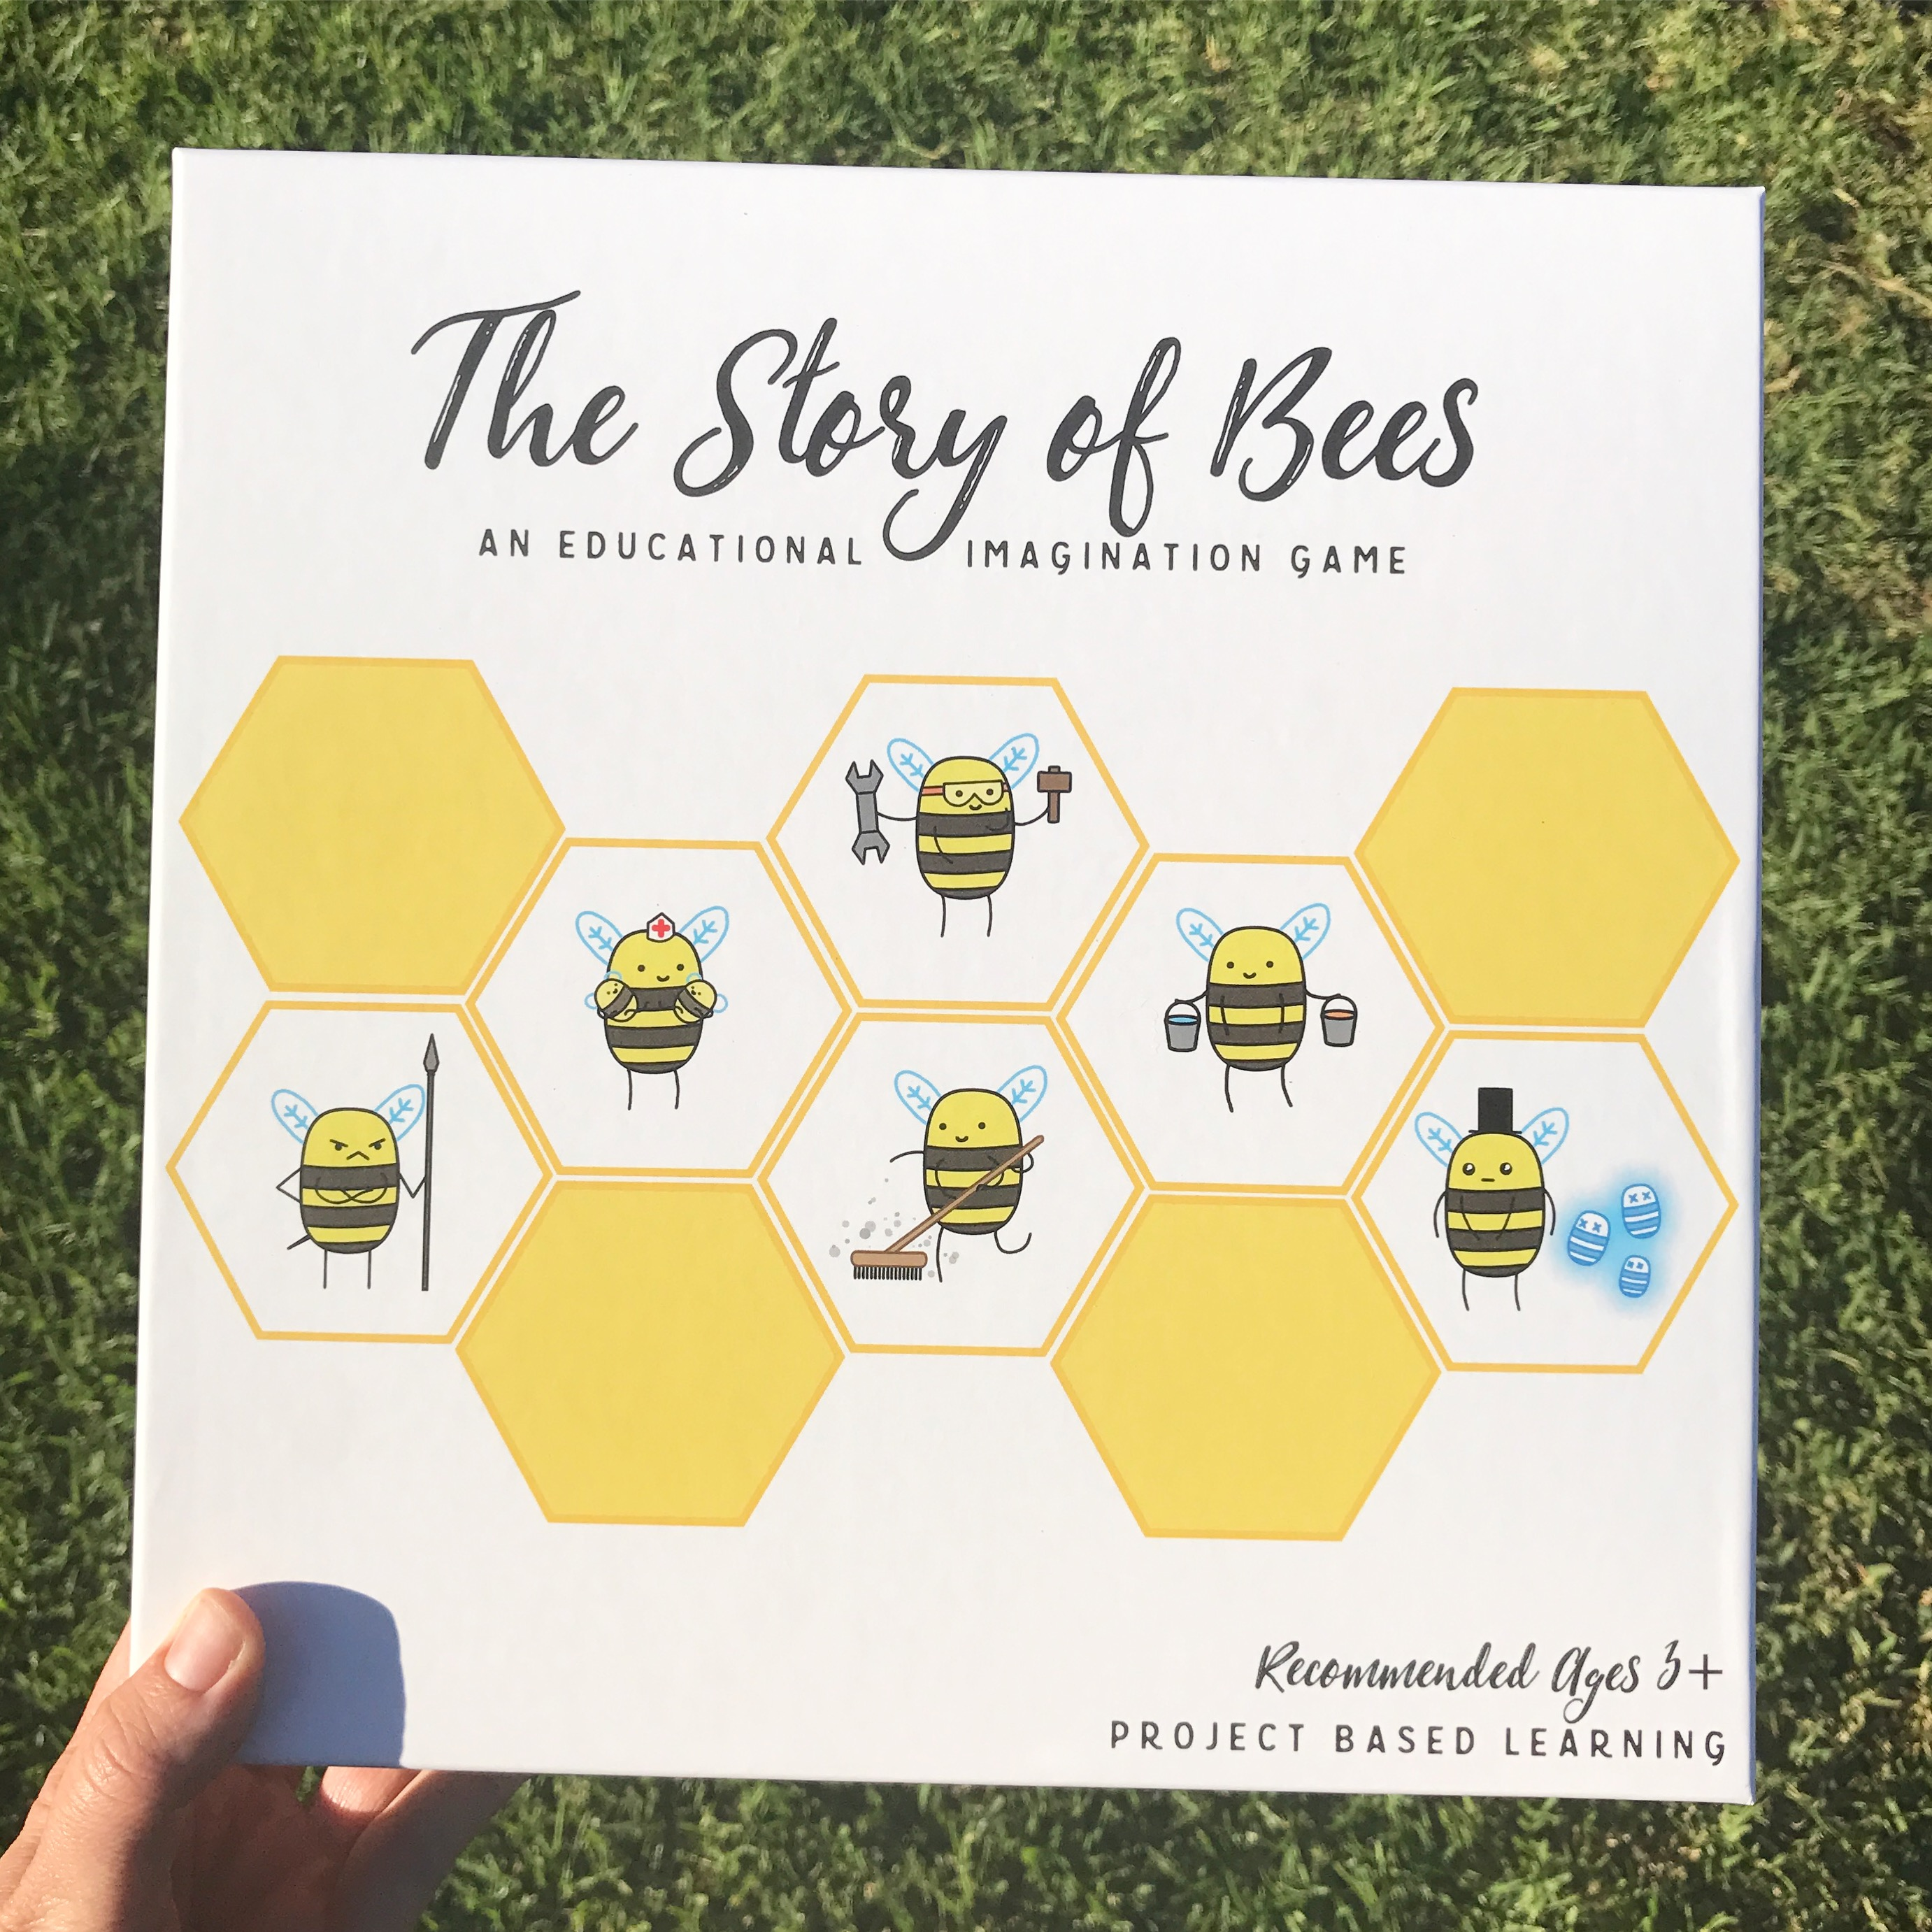 An educational game designed to teach kids all about honey bees!